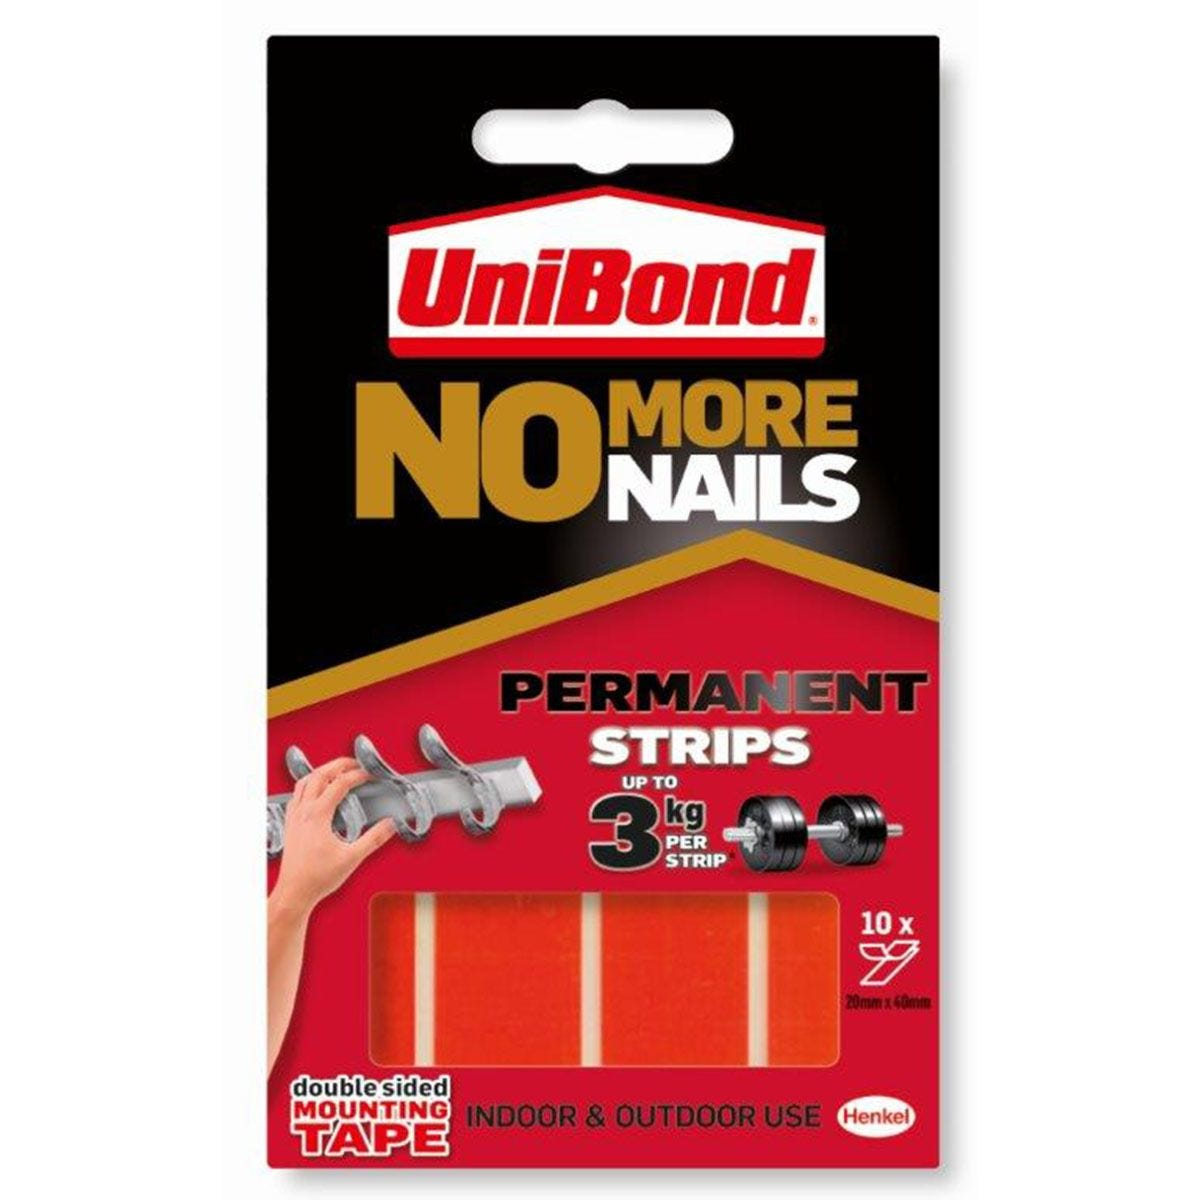 Unibond No More Nails Permanent Mounting Strips - Pack of 10